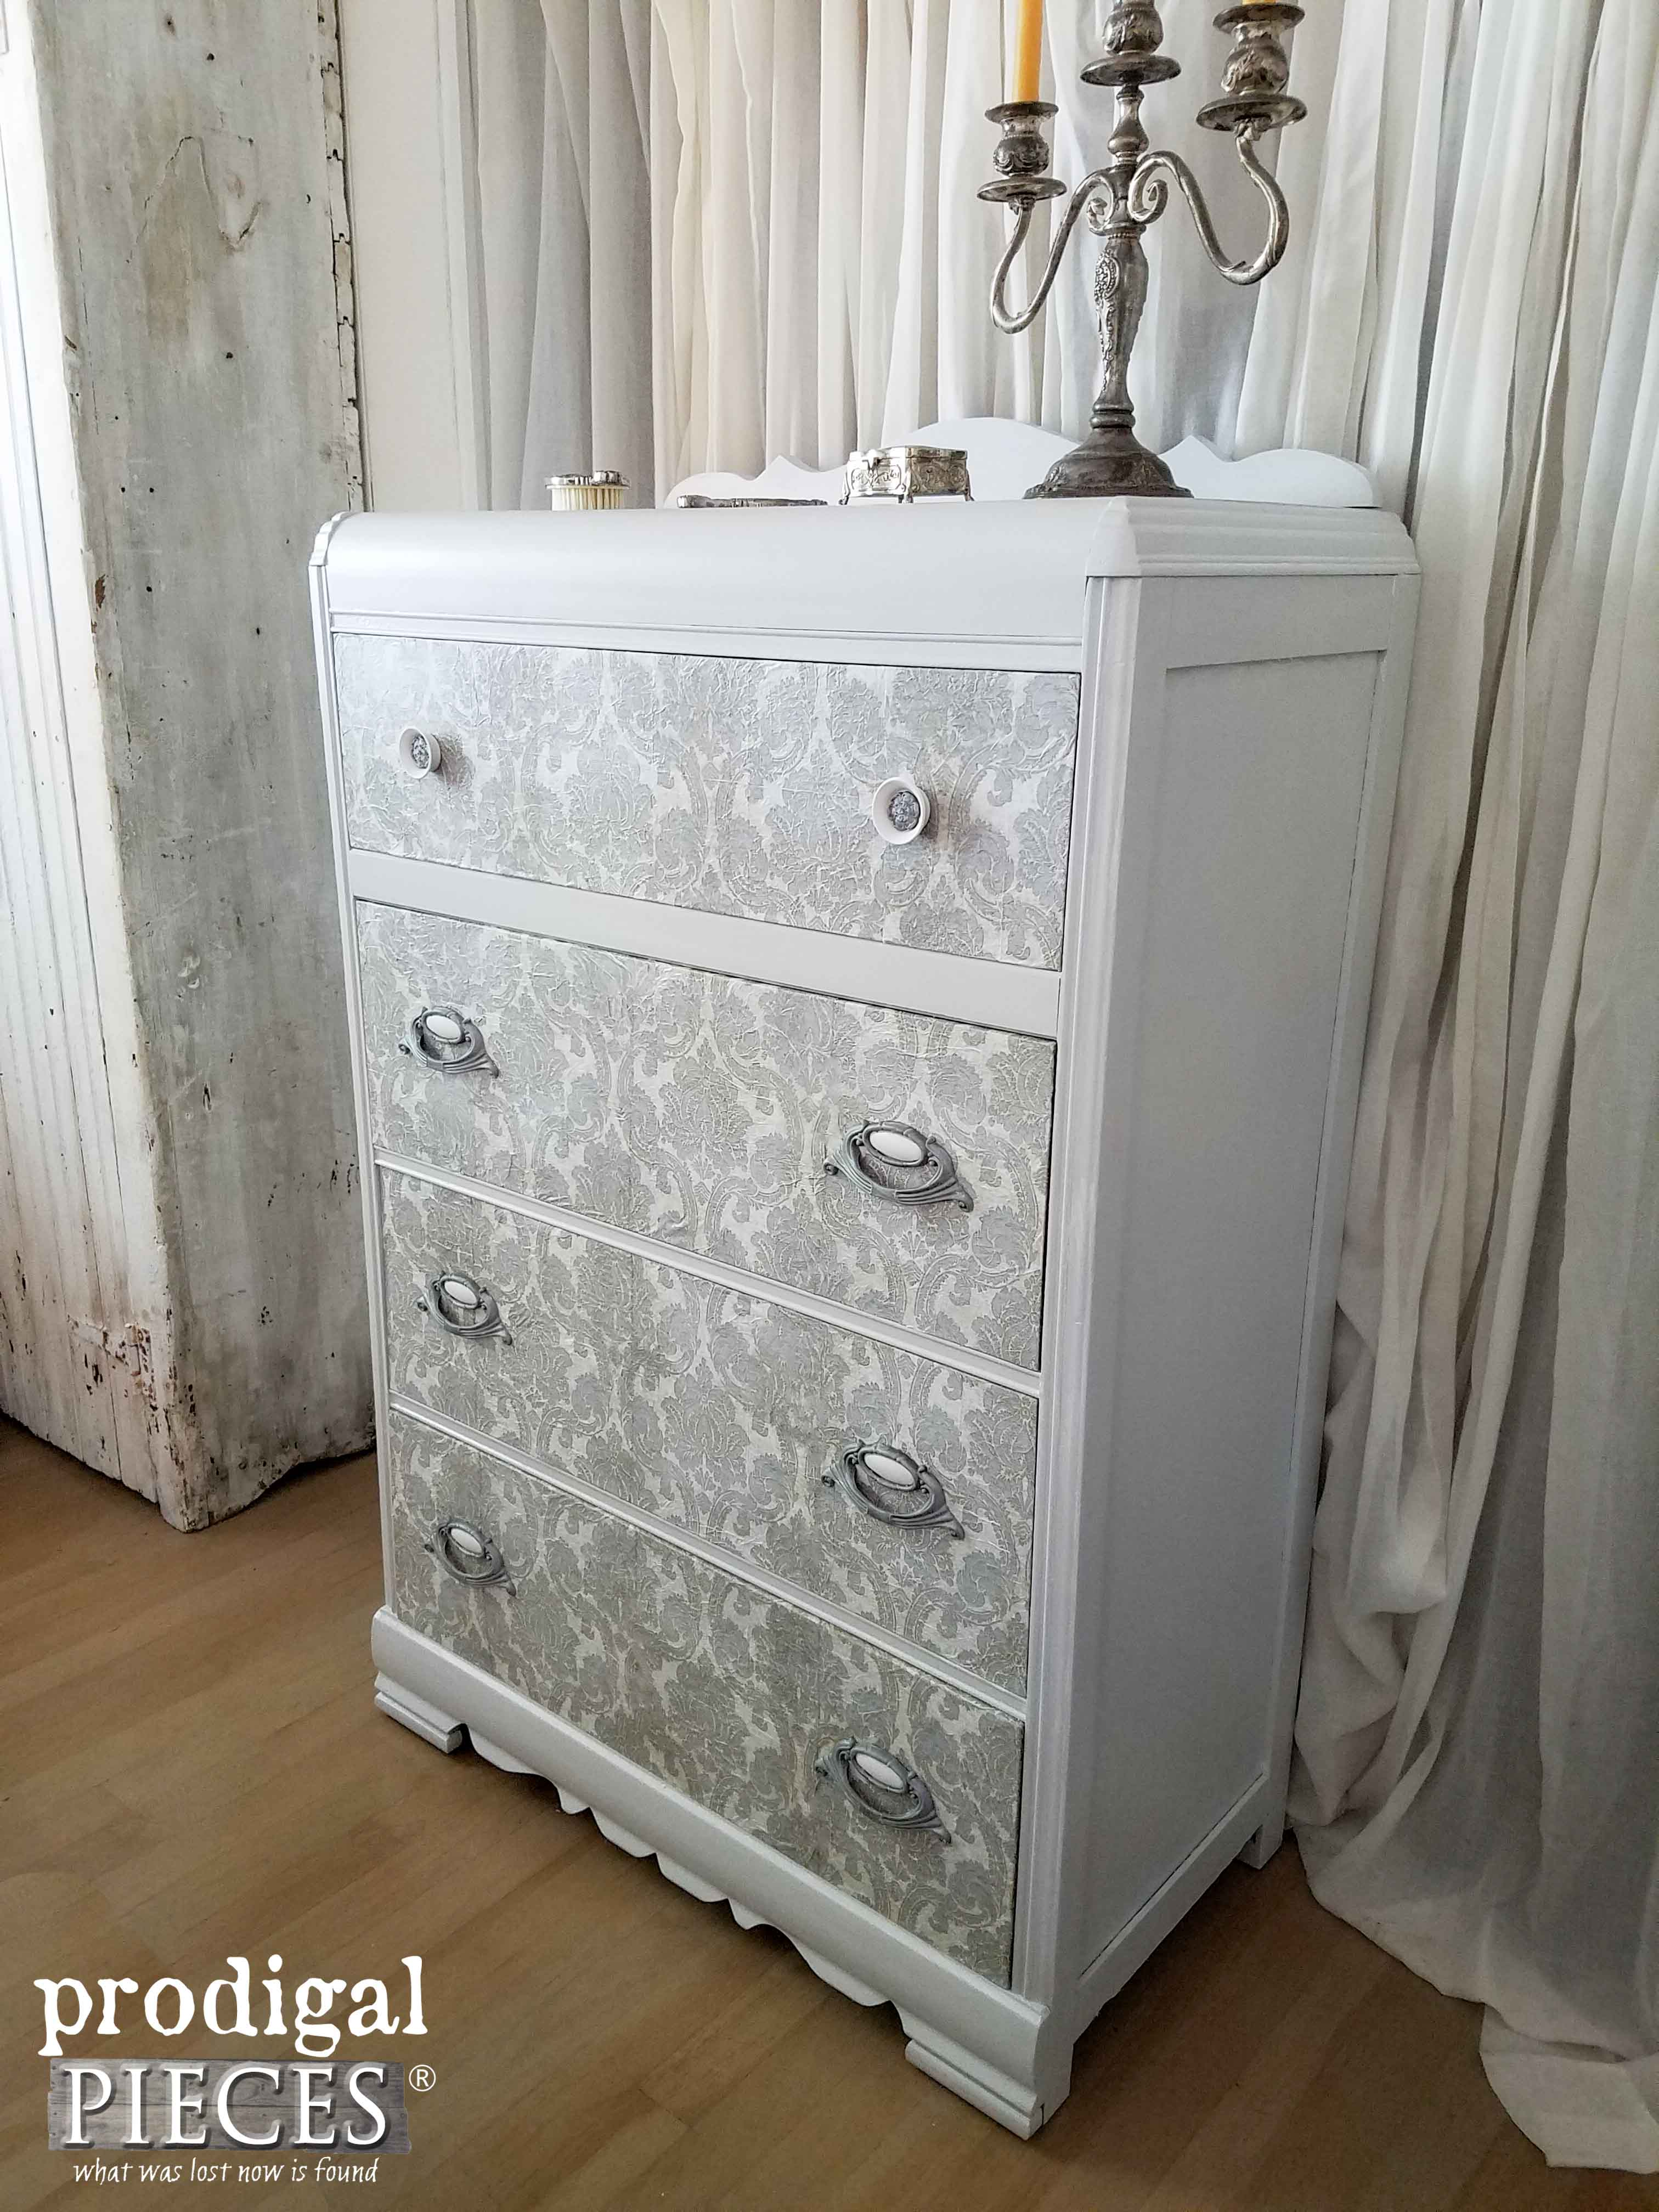 Antique Waterfall Chest of Drawers Made New with Decoupage by Prodigal Pieces | www.prodigalpieces.com